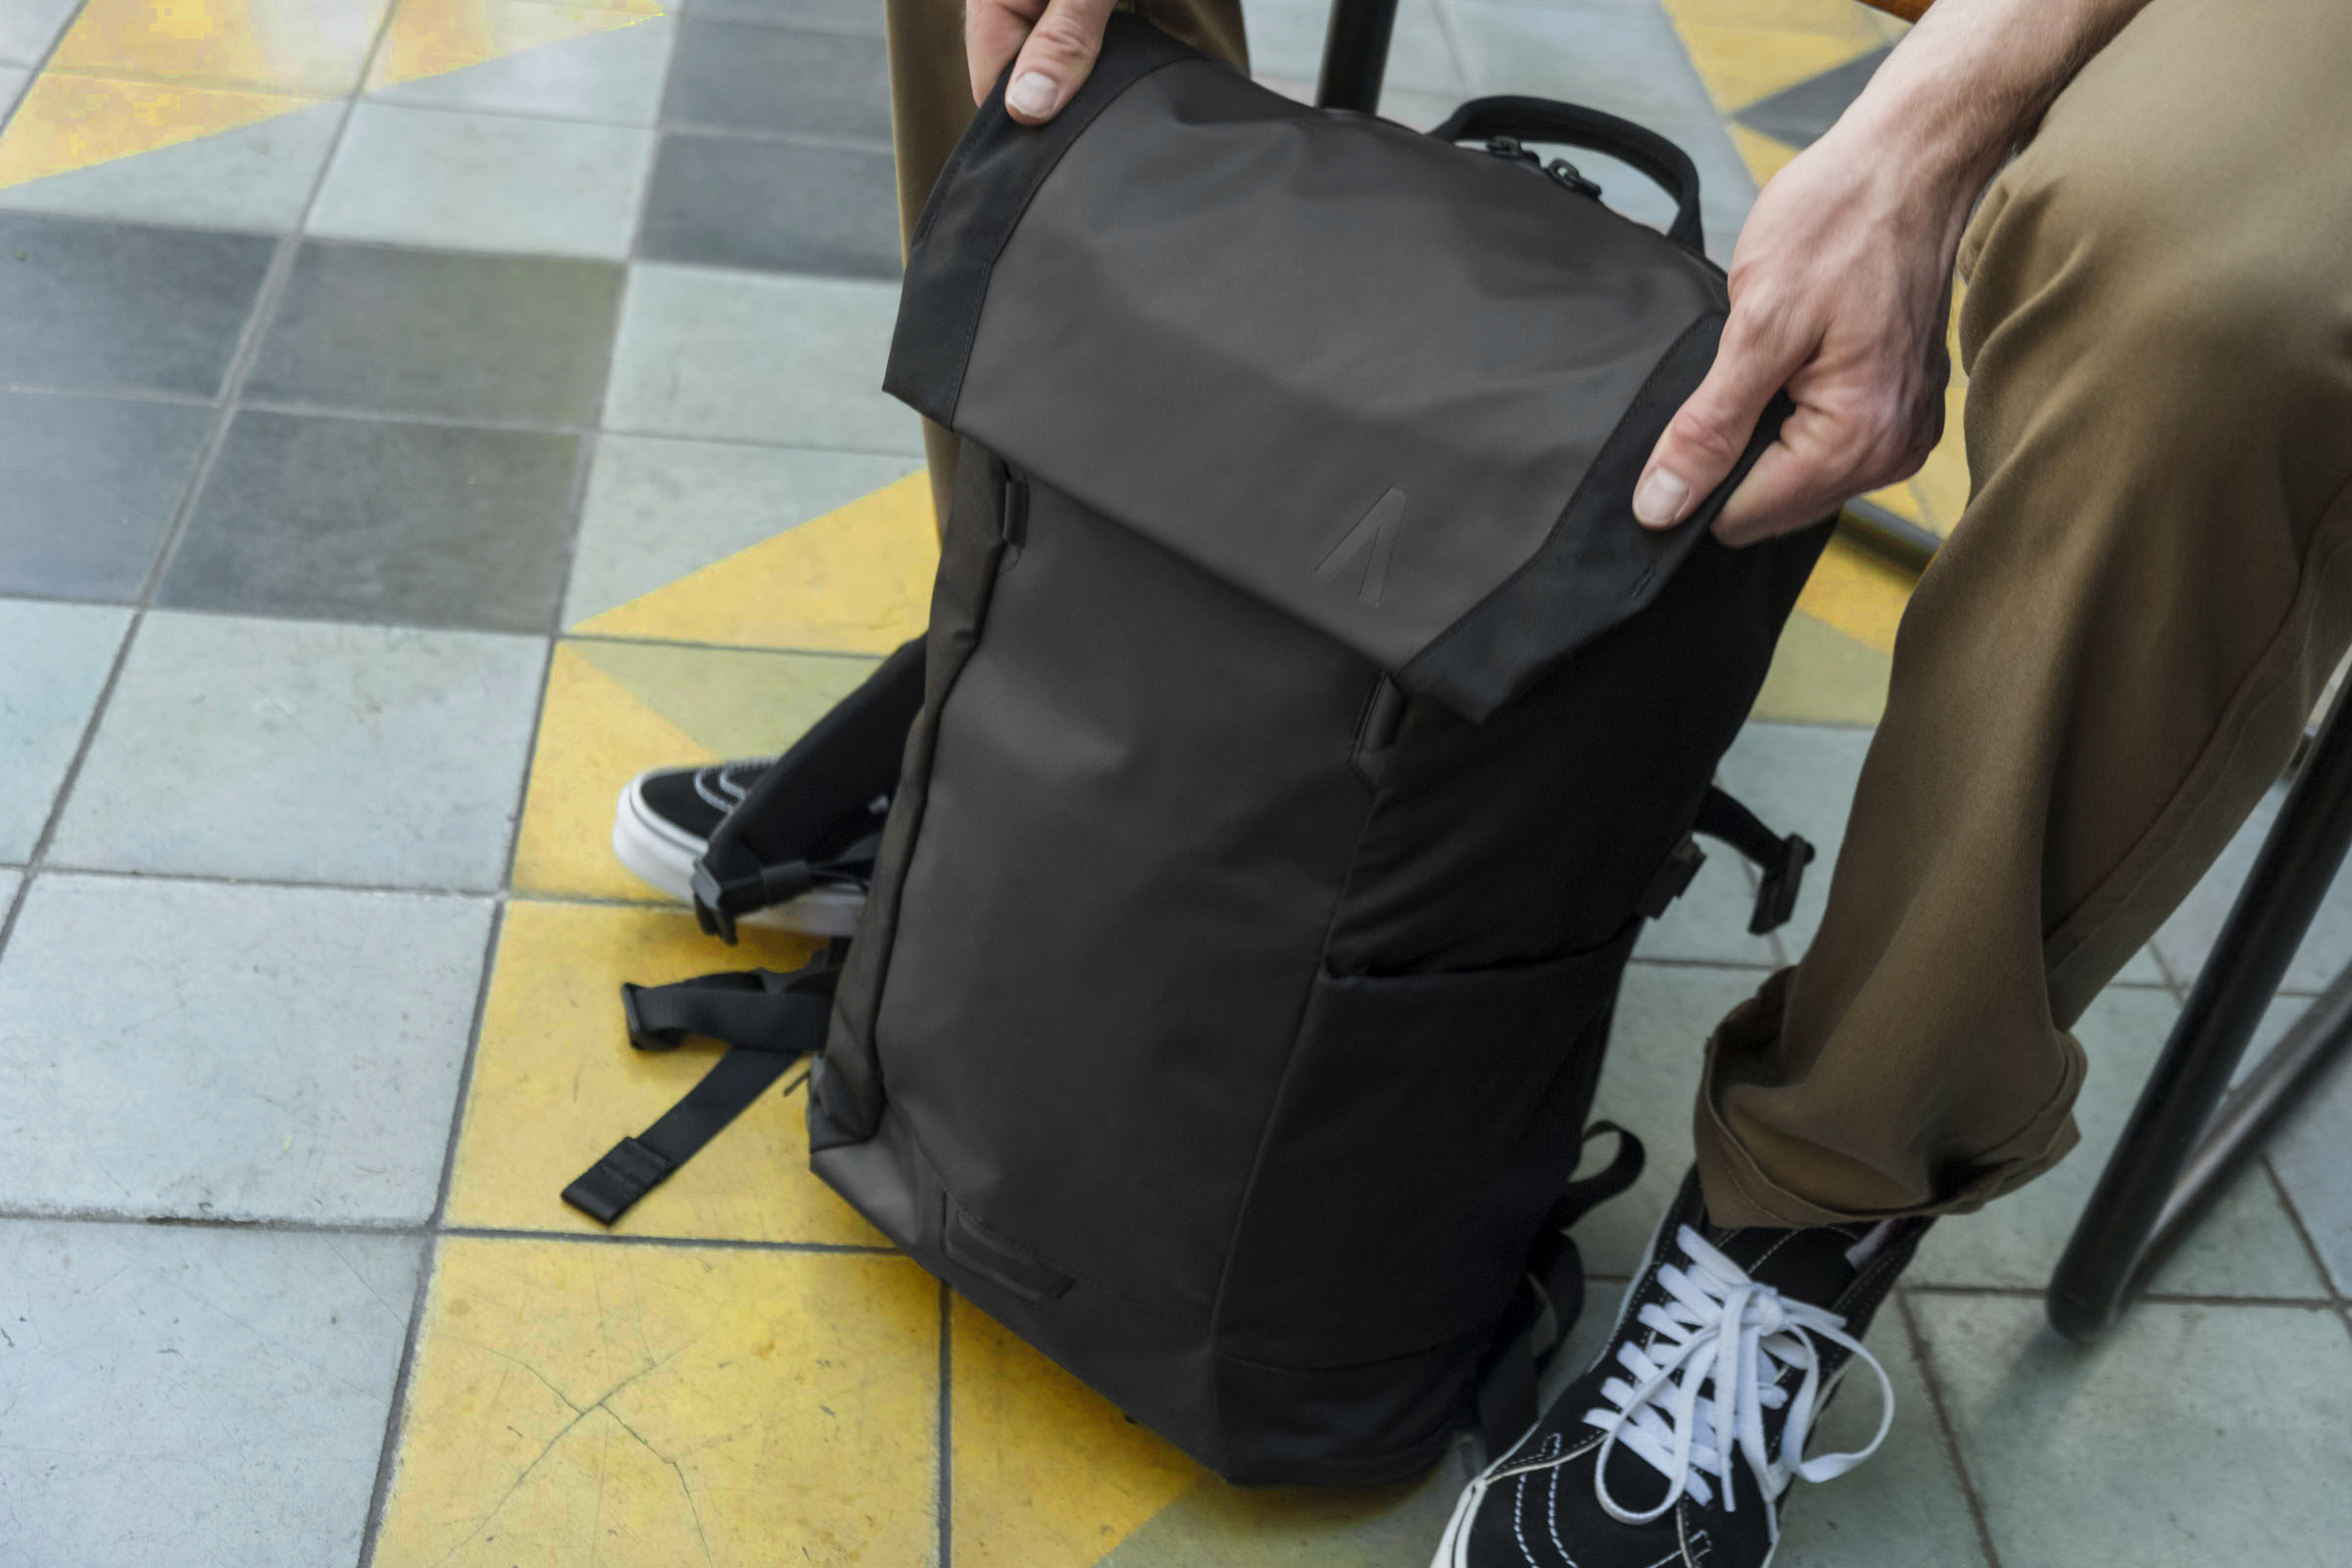 Boundary Errant backpack review  irresistible at  100 - The Verge 42232a4876eaf